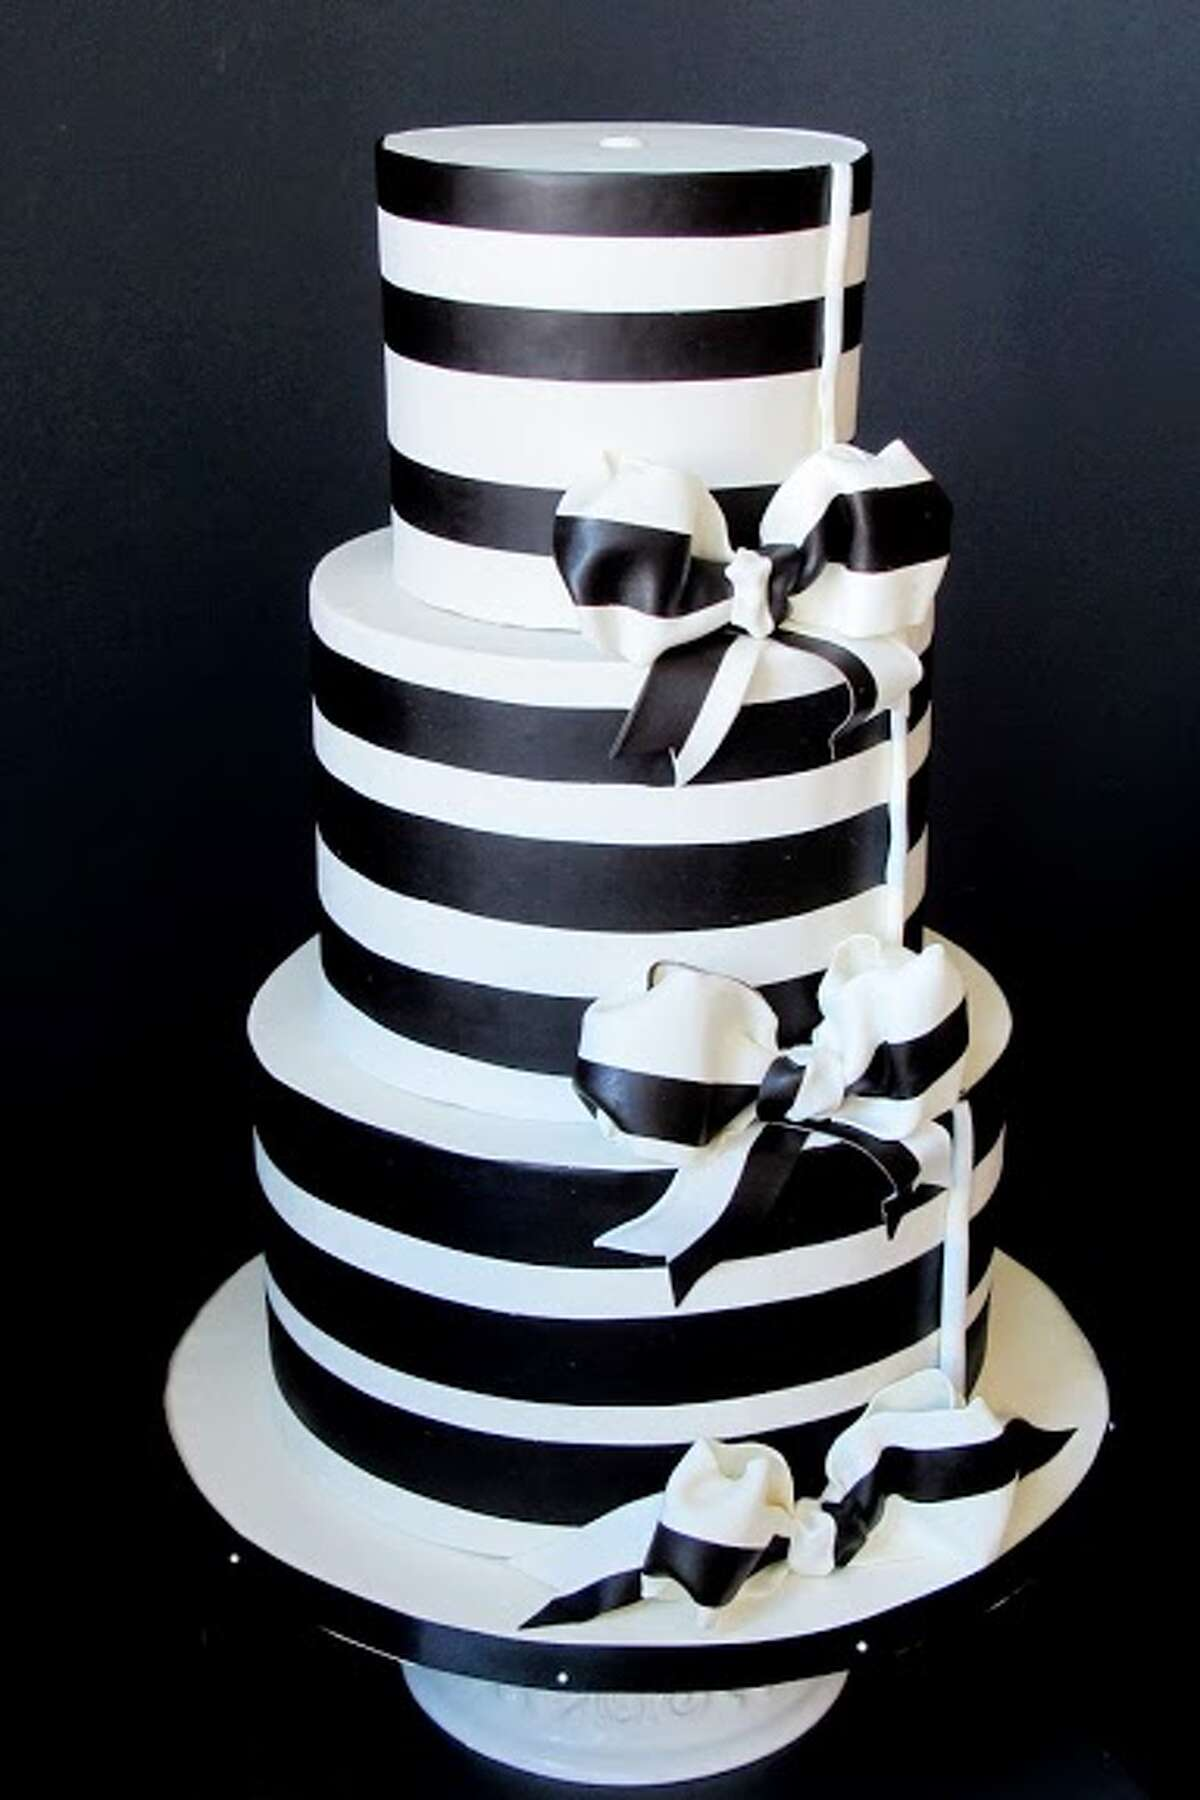 White and dark chocolate stripes on ganache by Beyond Buttercream.